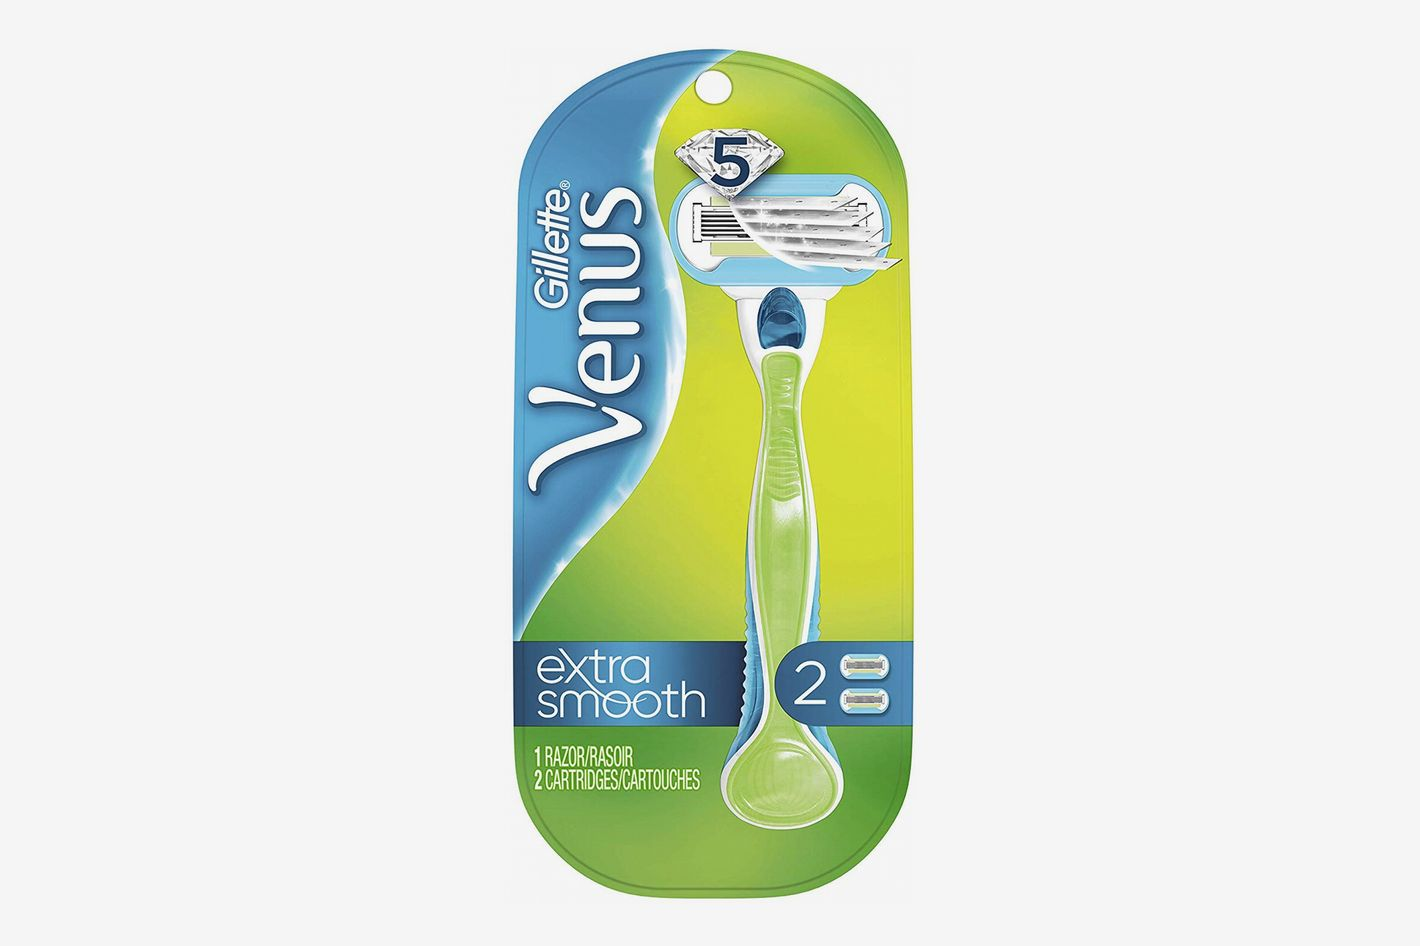 Gillette Venus Extra Smooth Green Women's Razor - 1 Handle + 2 Refills